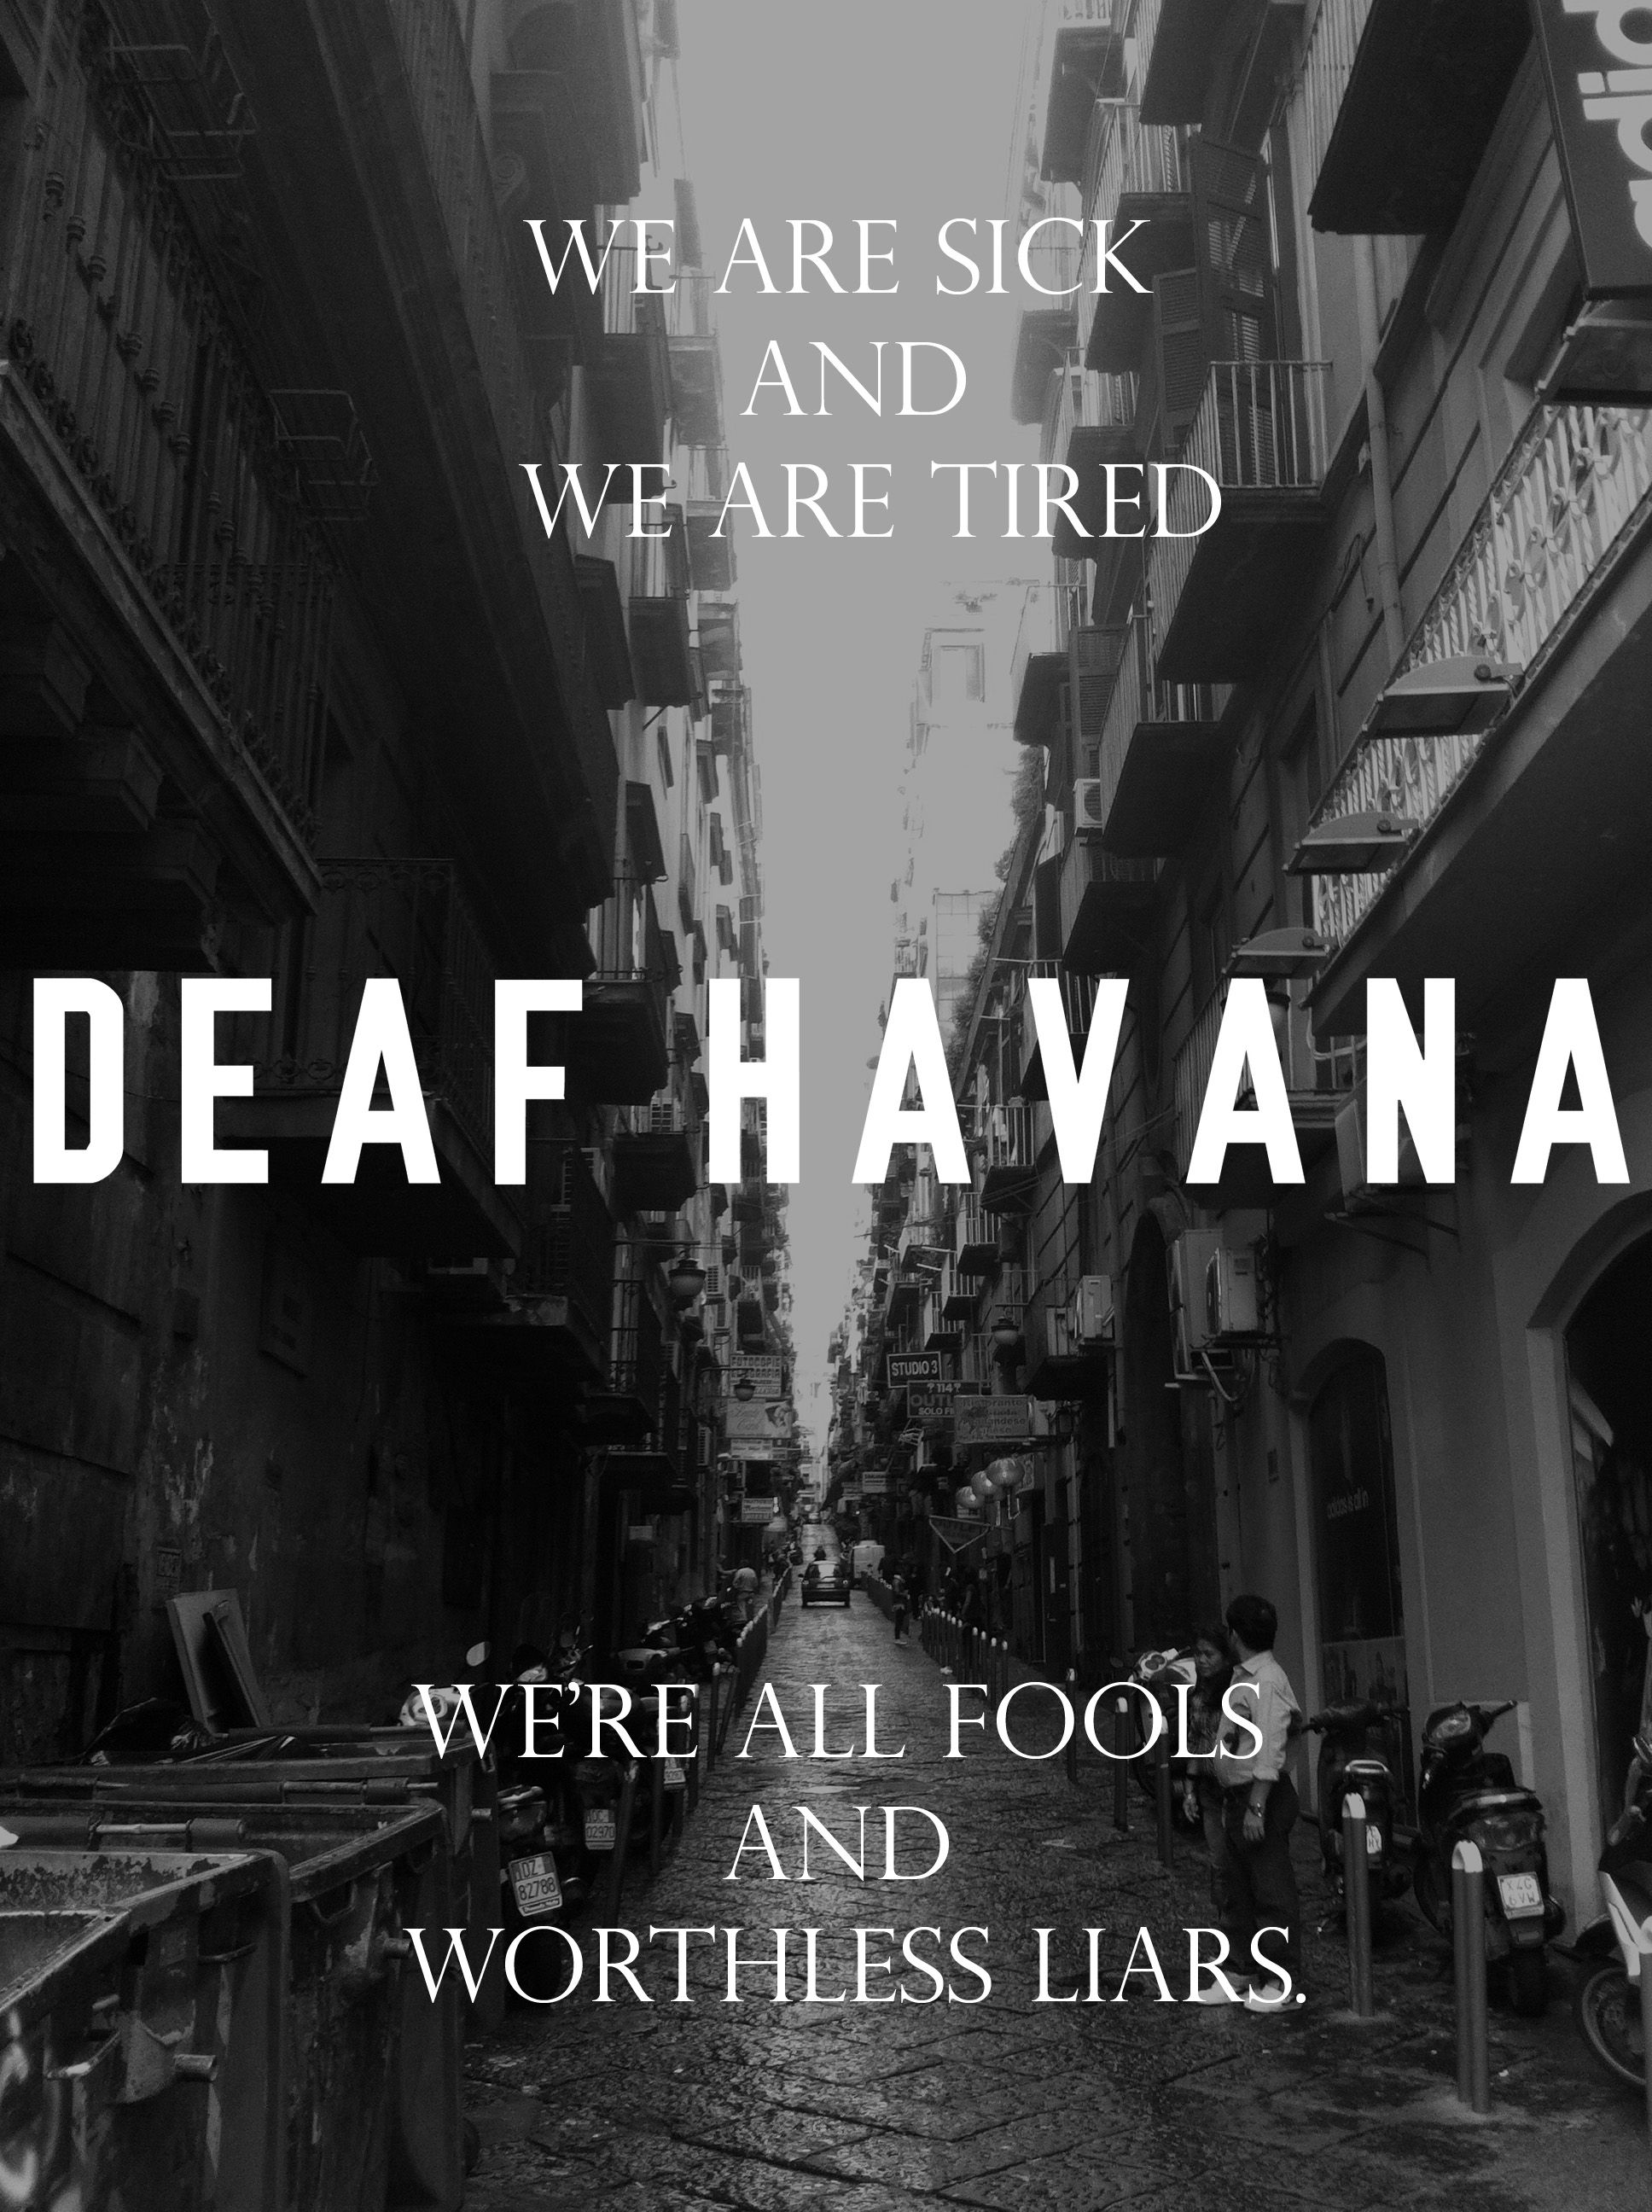 Deaf havana lyrics from the song the past six years image from a deaf havana lyrics from the song the past six years image from a trip to italy in october 2013 kevin prescott stopboris Gallery